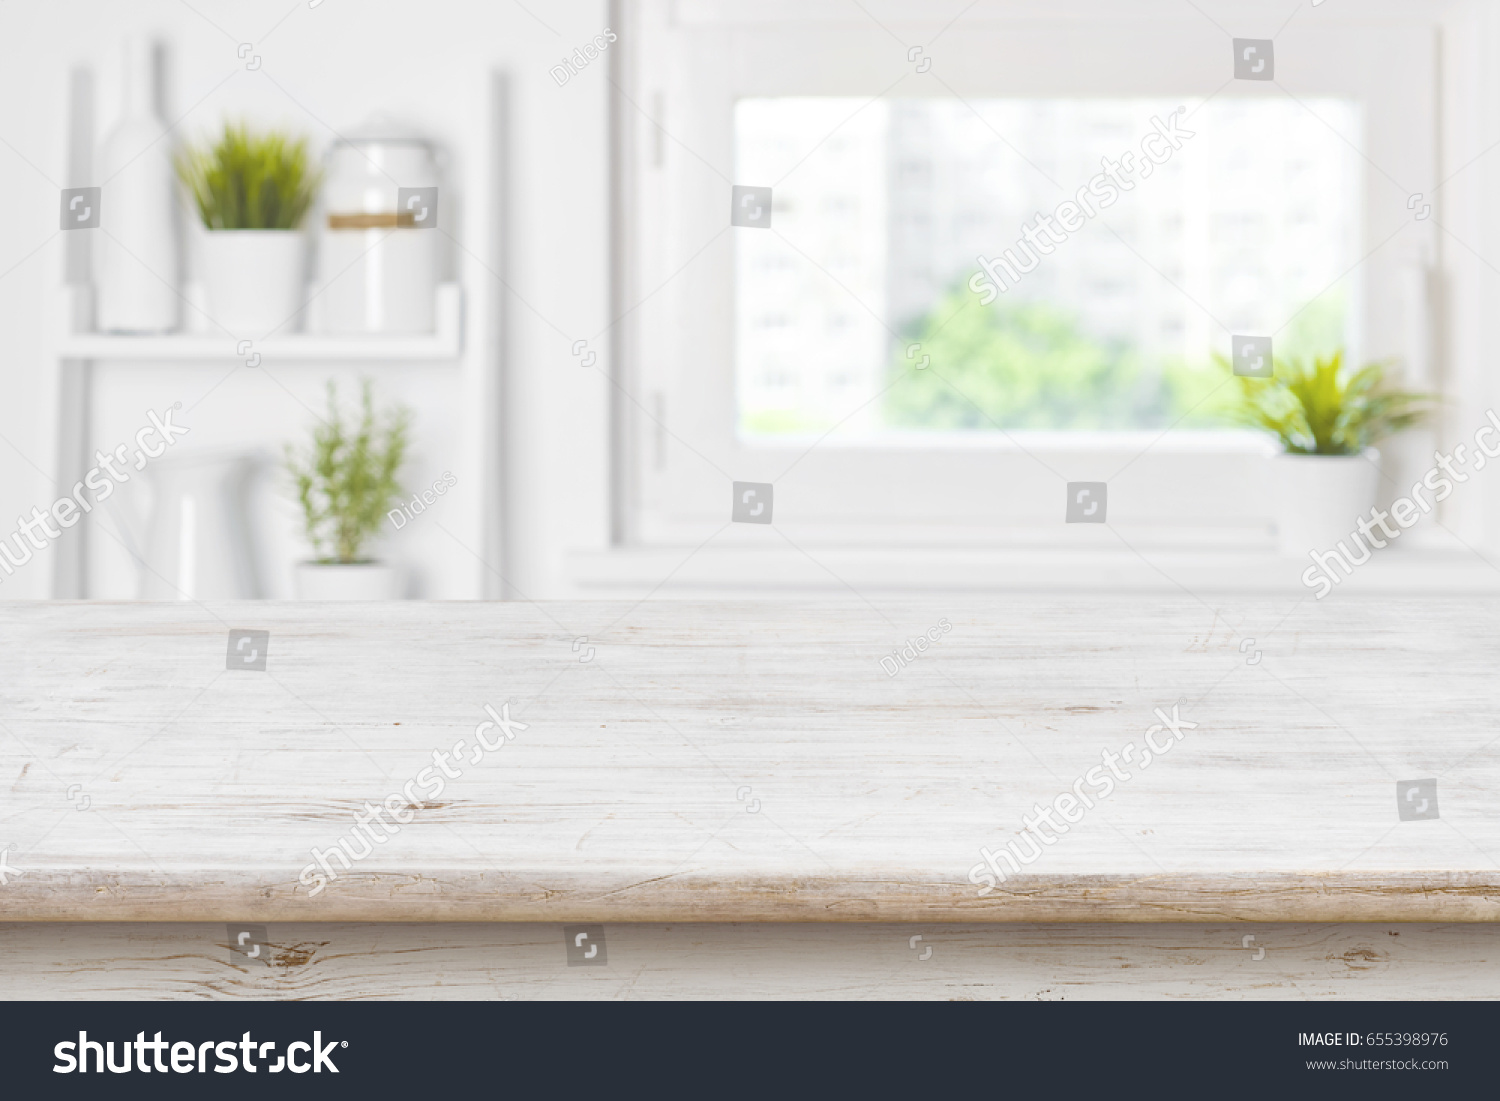 Empty living room with large windows can be as background stock - Empty Textured Wooden Table And Kitchen Window Shelves Blurred Background